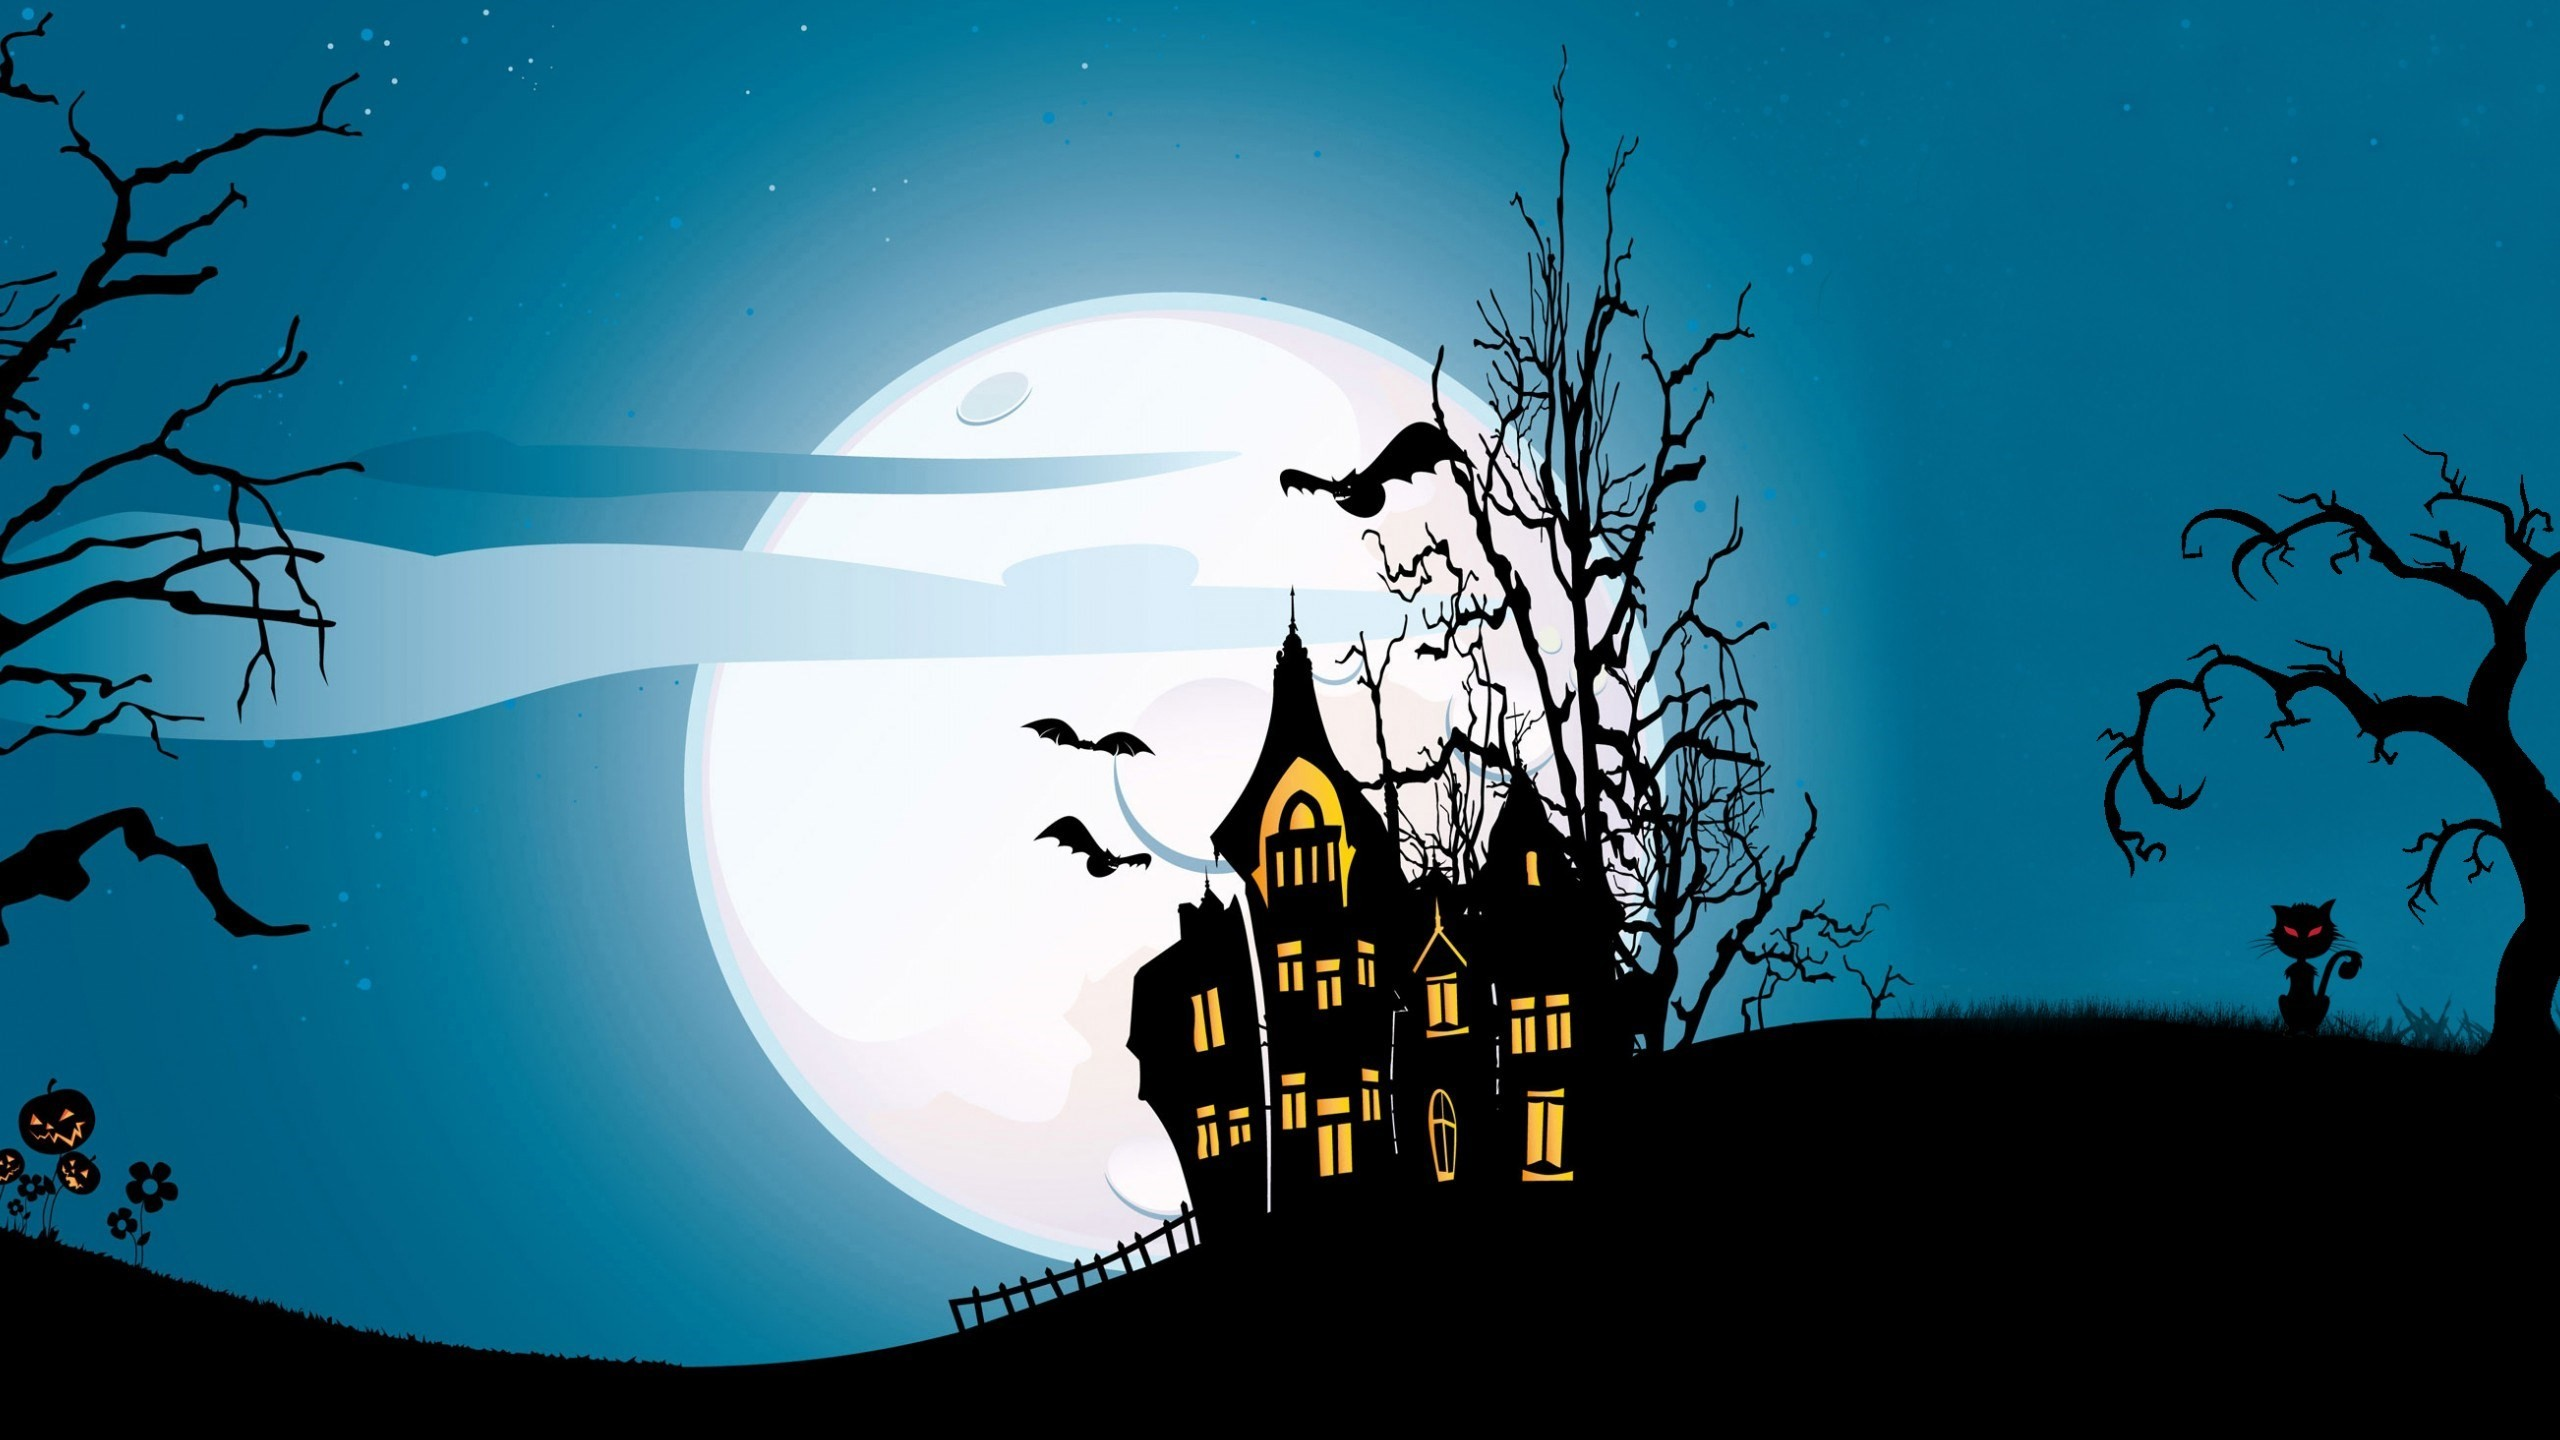 Cool Wallpaper Macbook Halloween - QHD-macbook-horror-wallpaper  HD_761719.jpg